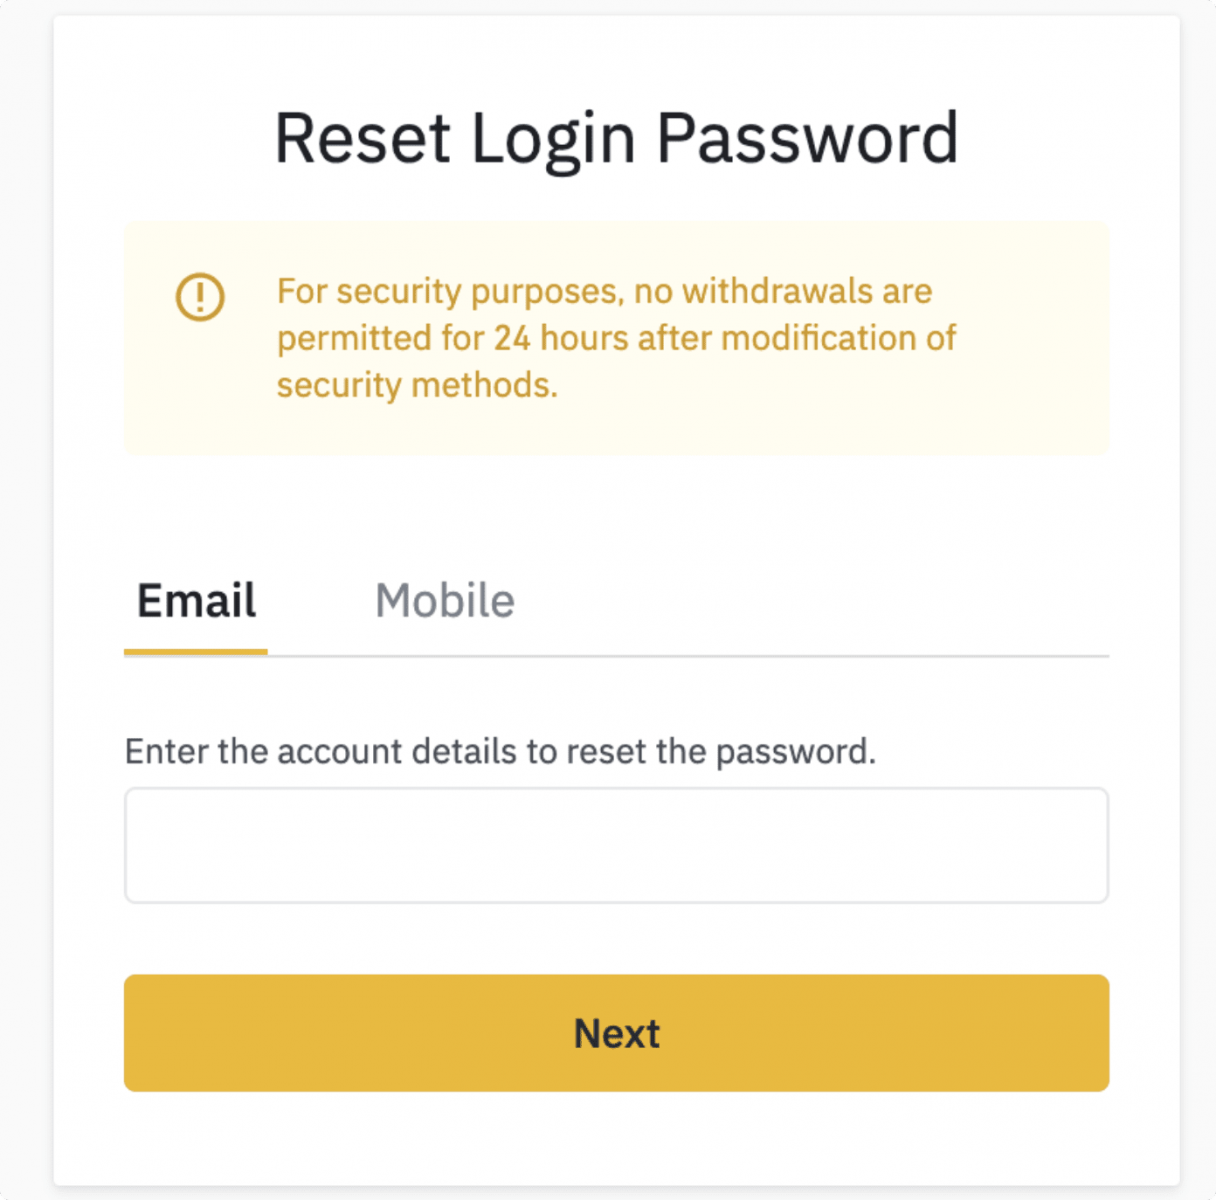 How to Login and Deposit Money in Binance